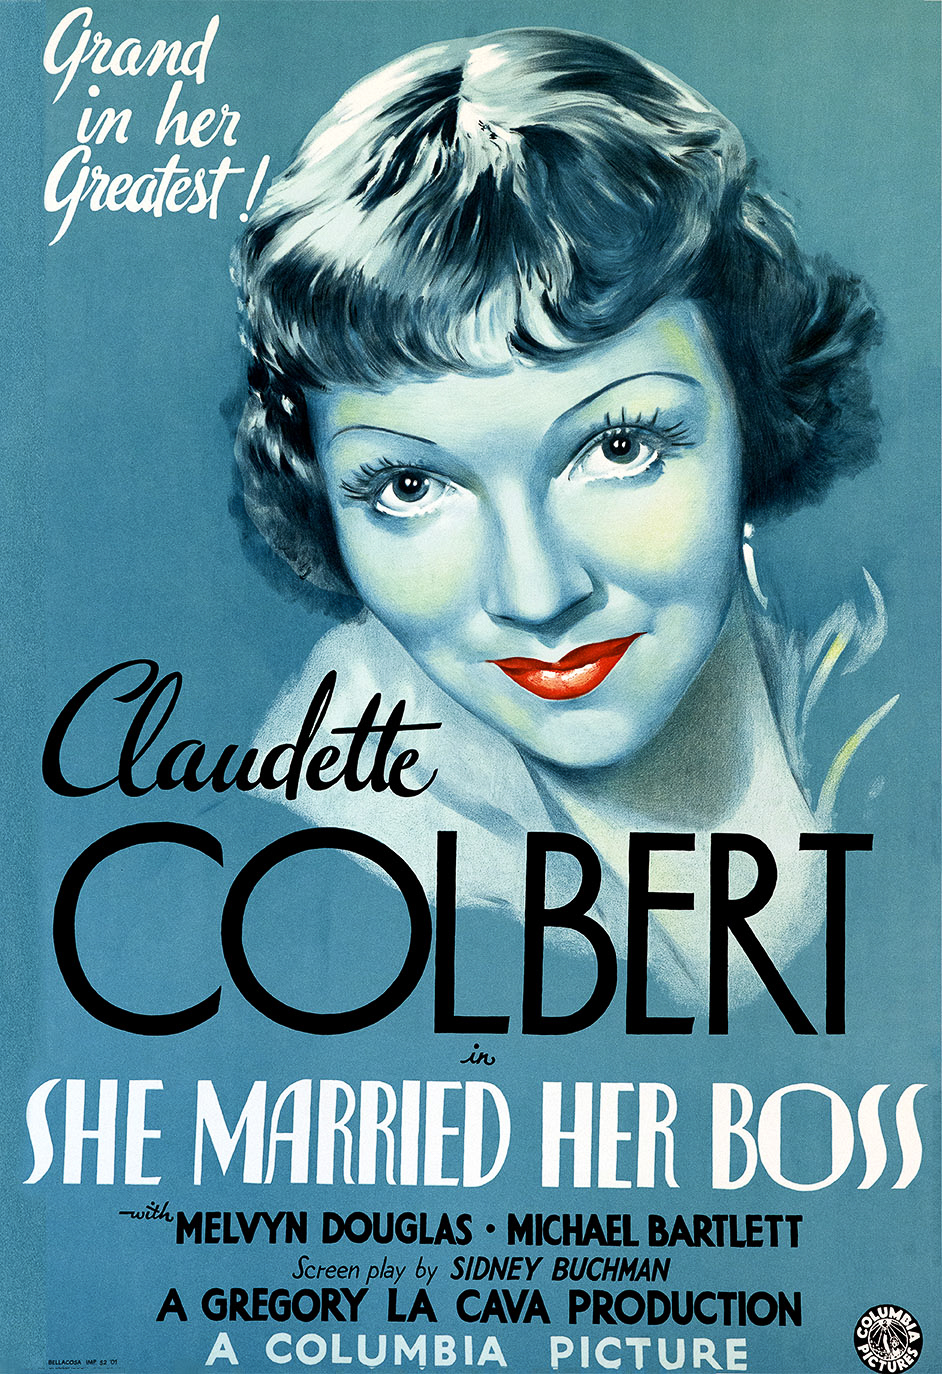 Claudette Corbert She Married her Boss columbia picture fine art lithograph movie poster classic film classic movie poster golden age of cinema one-sheet red lips